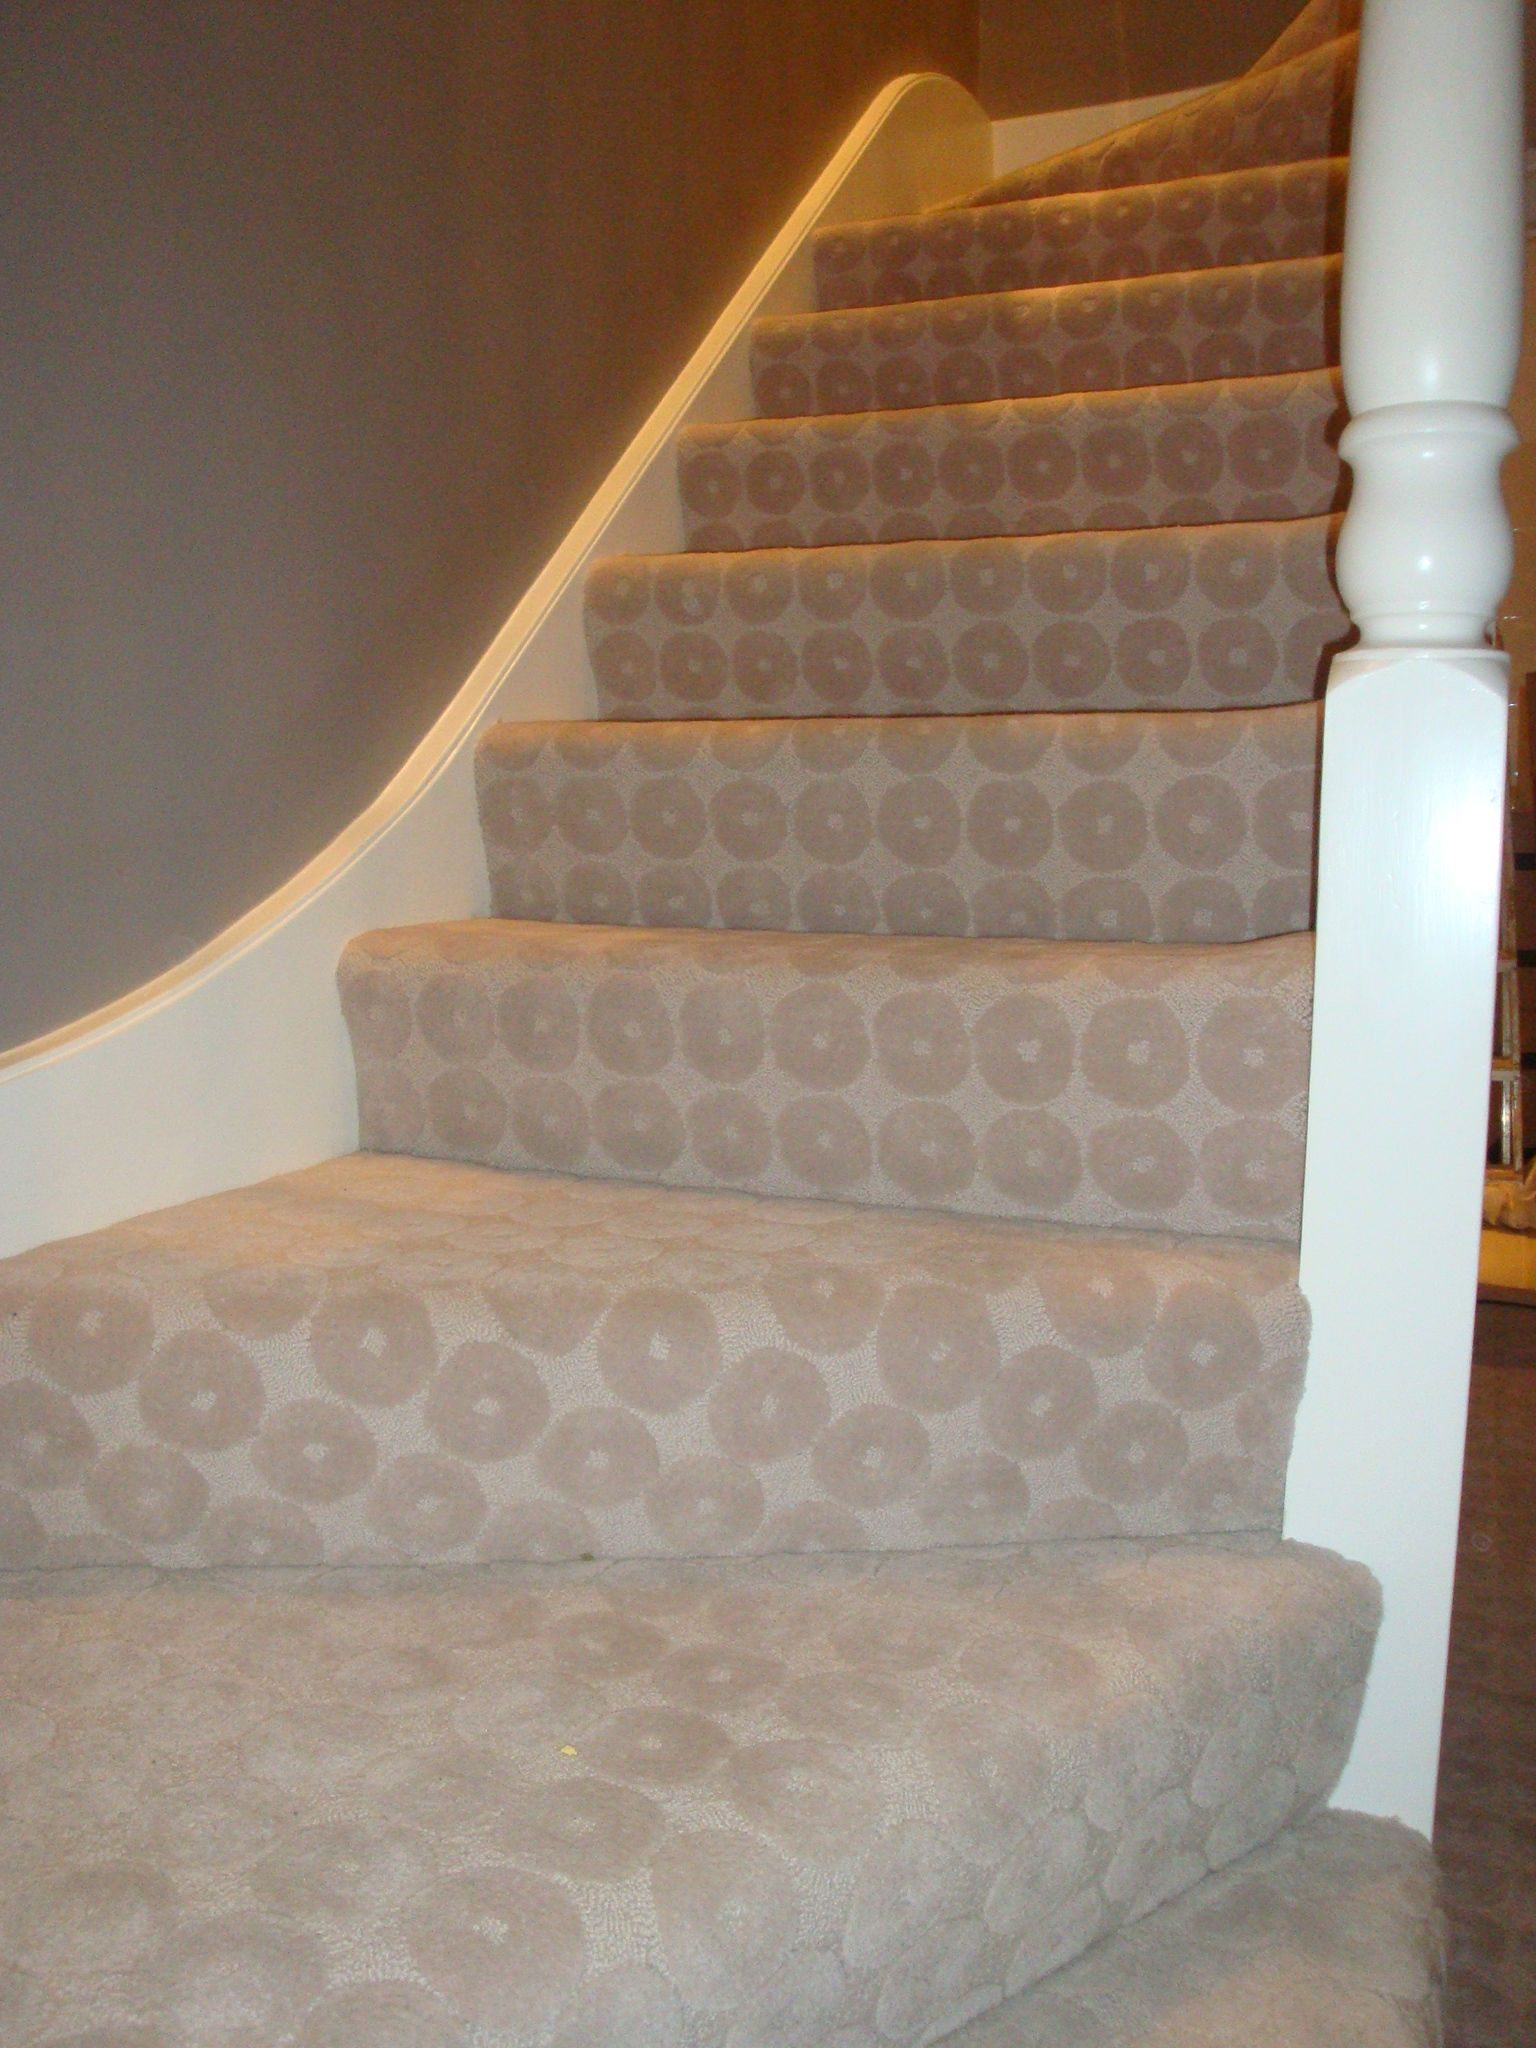 Merveilleux 100% Wool Textured/fully Fitted Stair Carpet